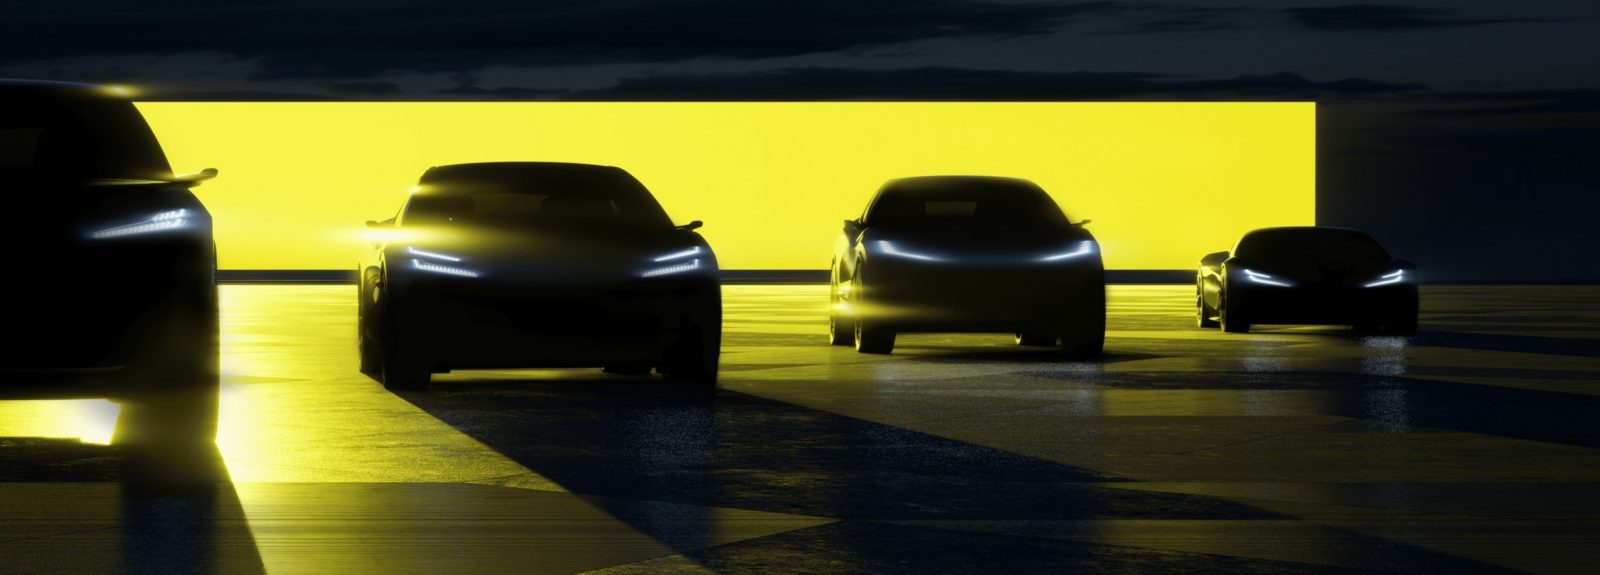 2026-lotus-type-135-will-be-the-elise's-electric-successor,-has-big-shoes-to-fill